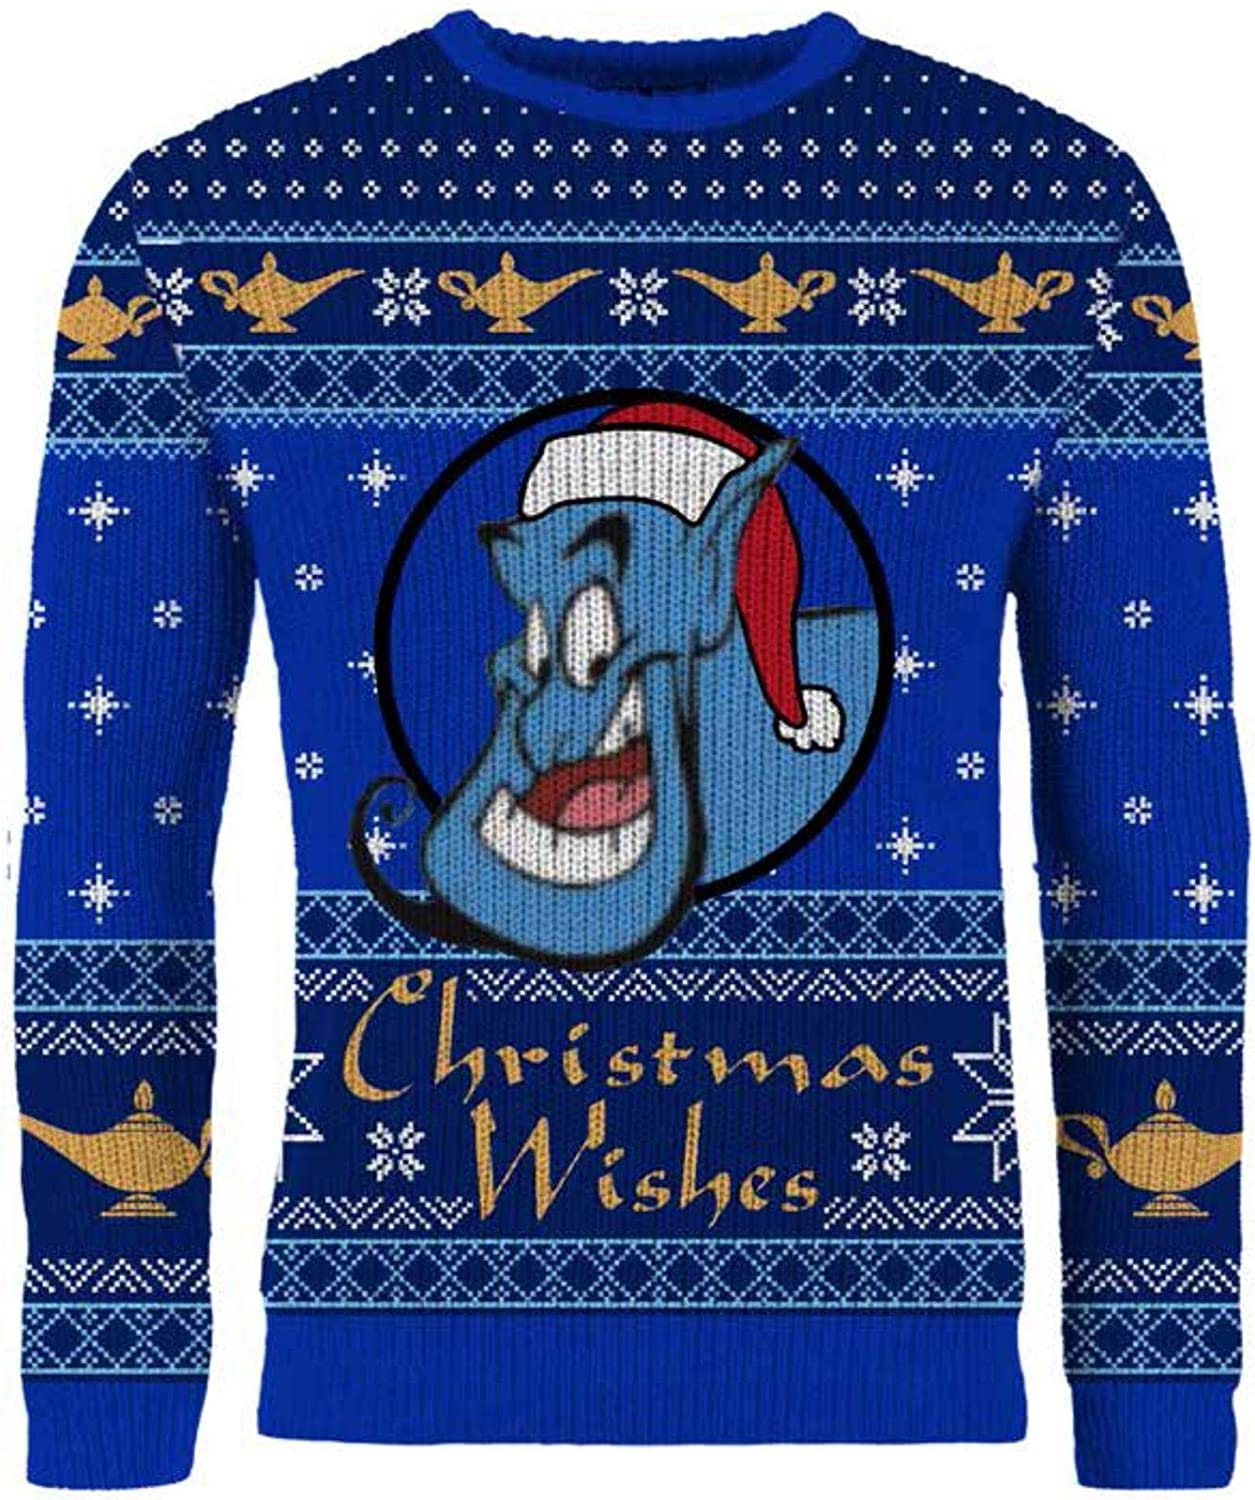 Aladdin Genie Christmas Wishes Children's Blue Knitted Christmas Jumper